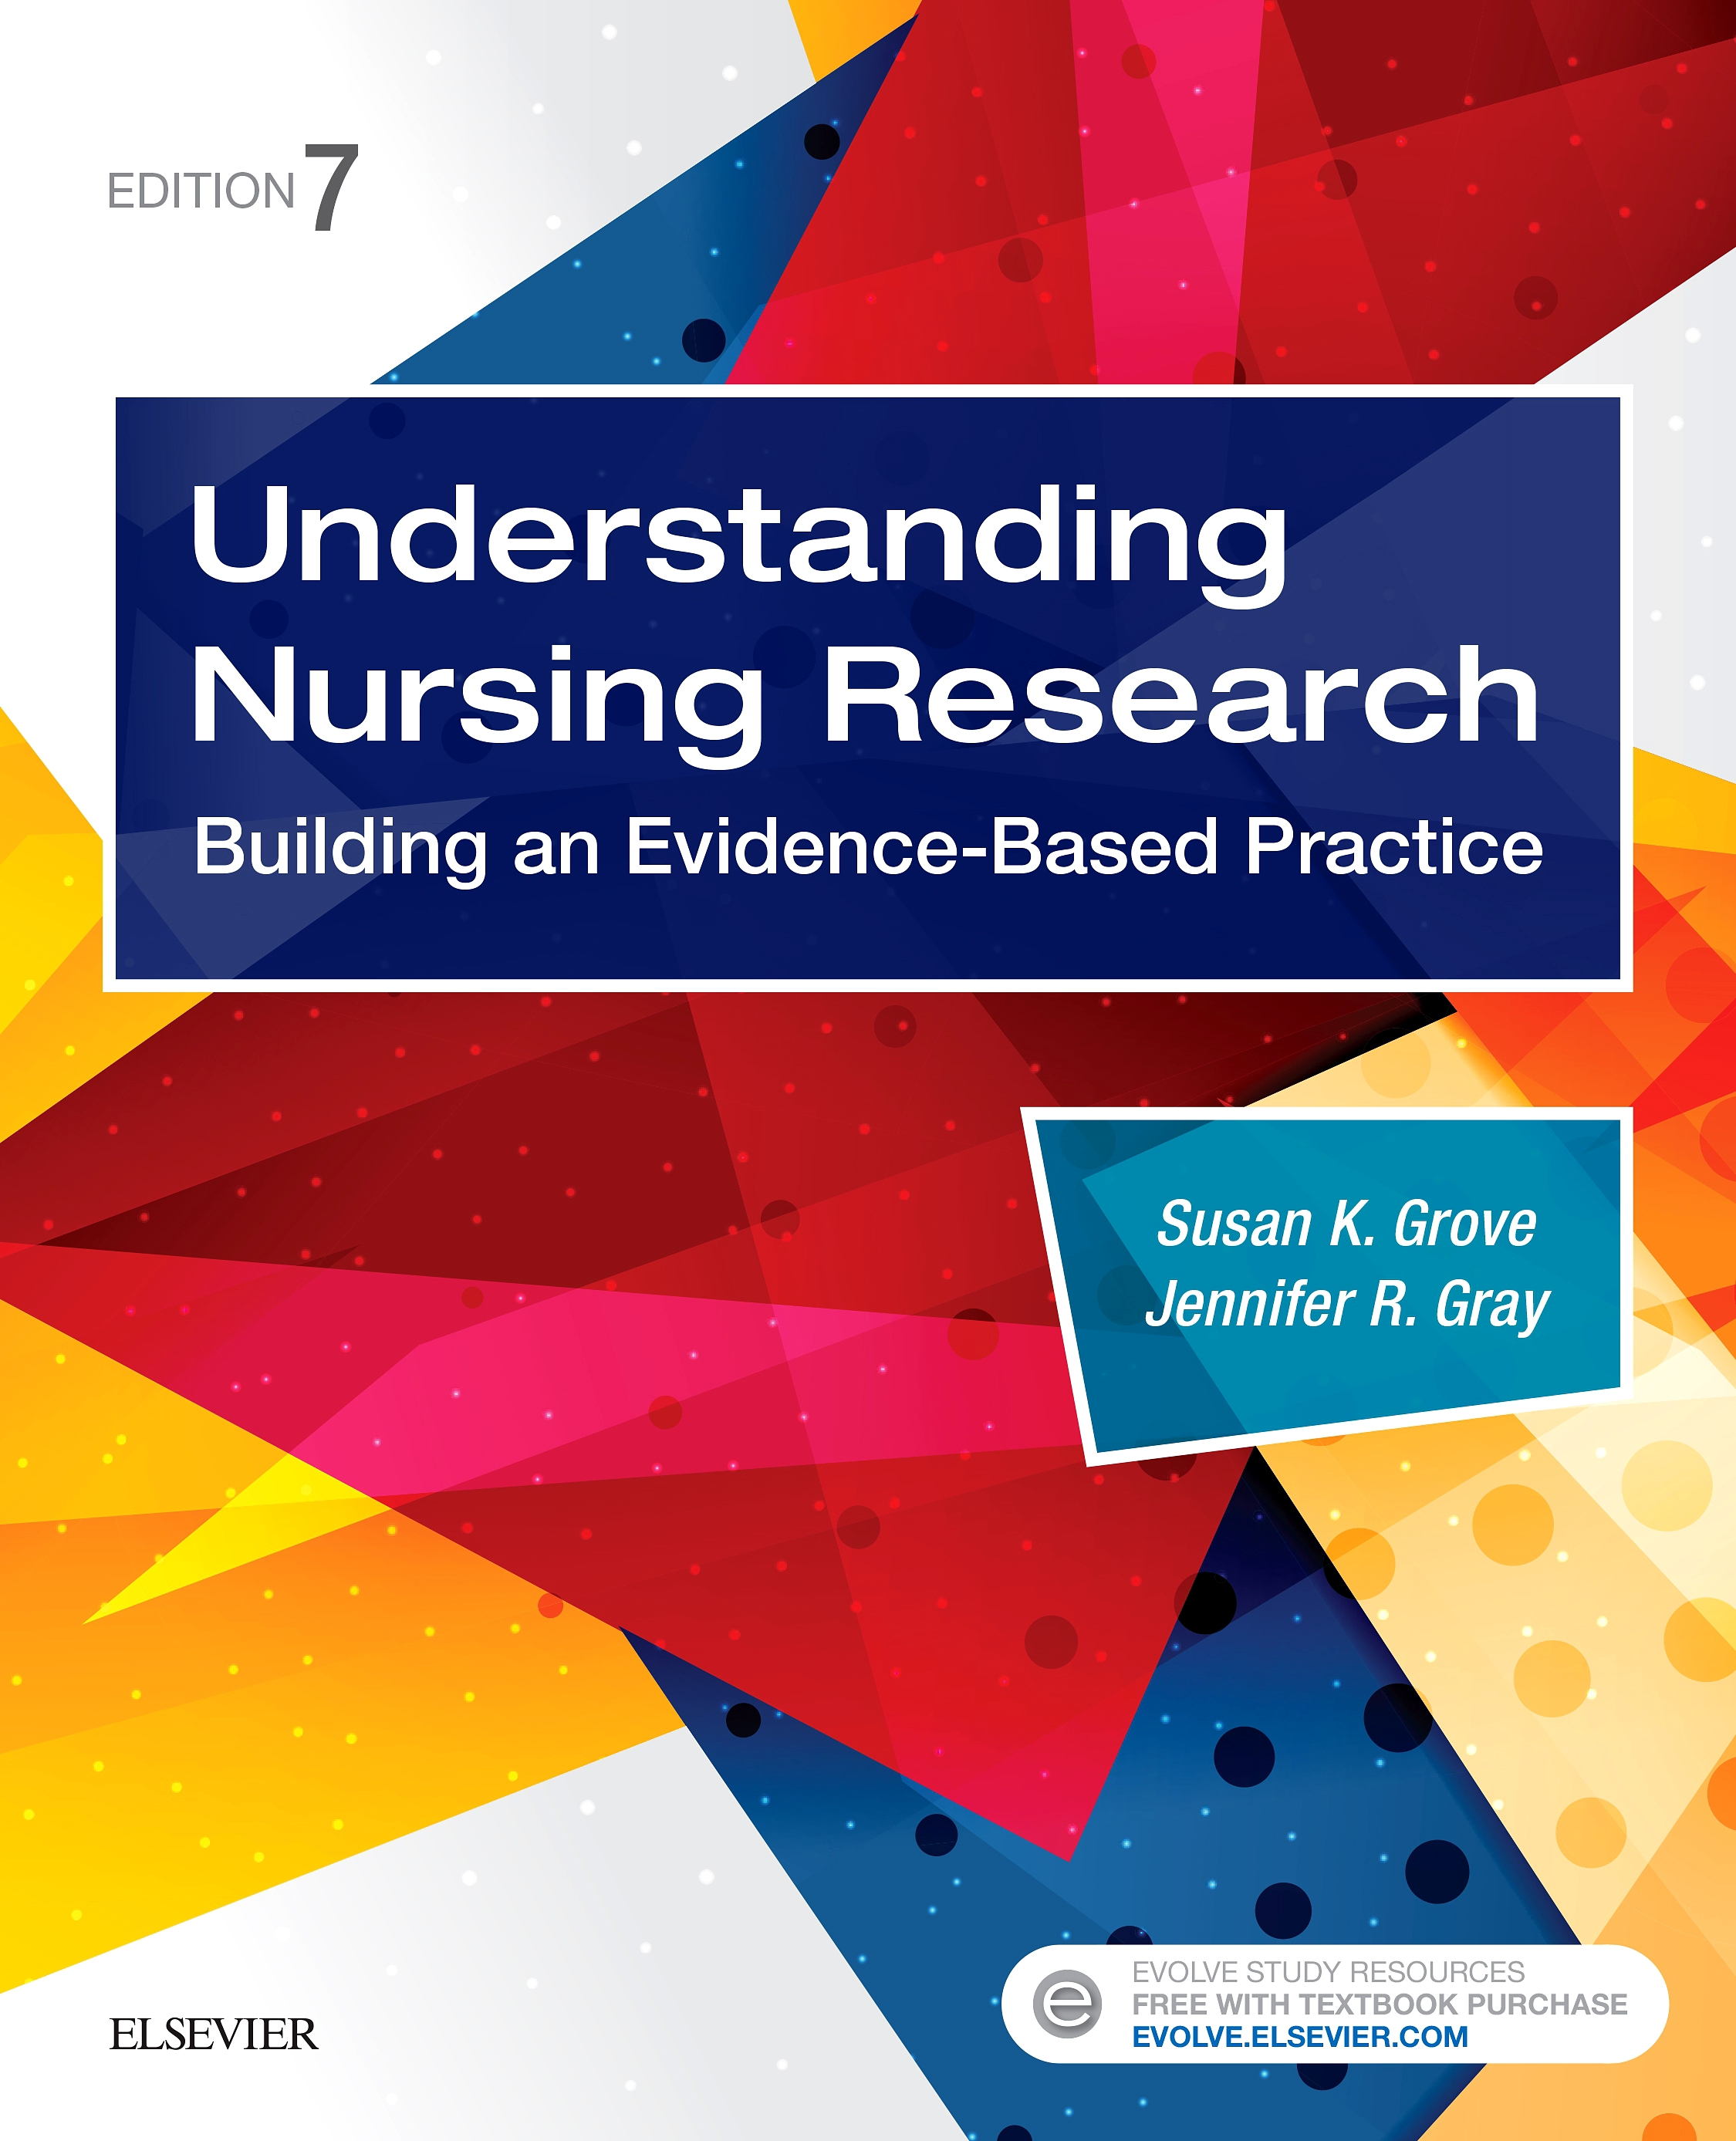 Evolve Resources for Understanding Nursing Research, 7th Edition